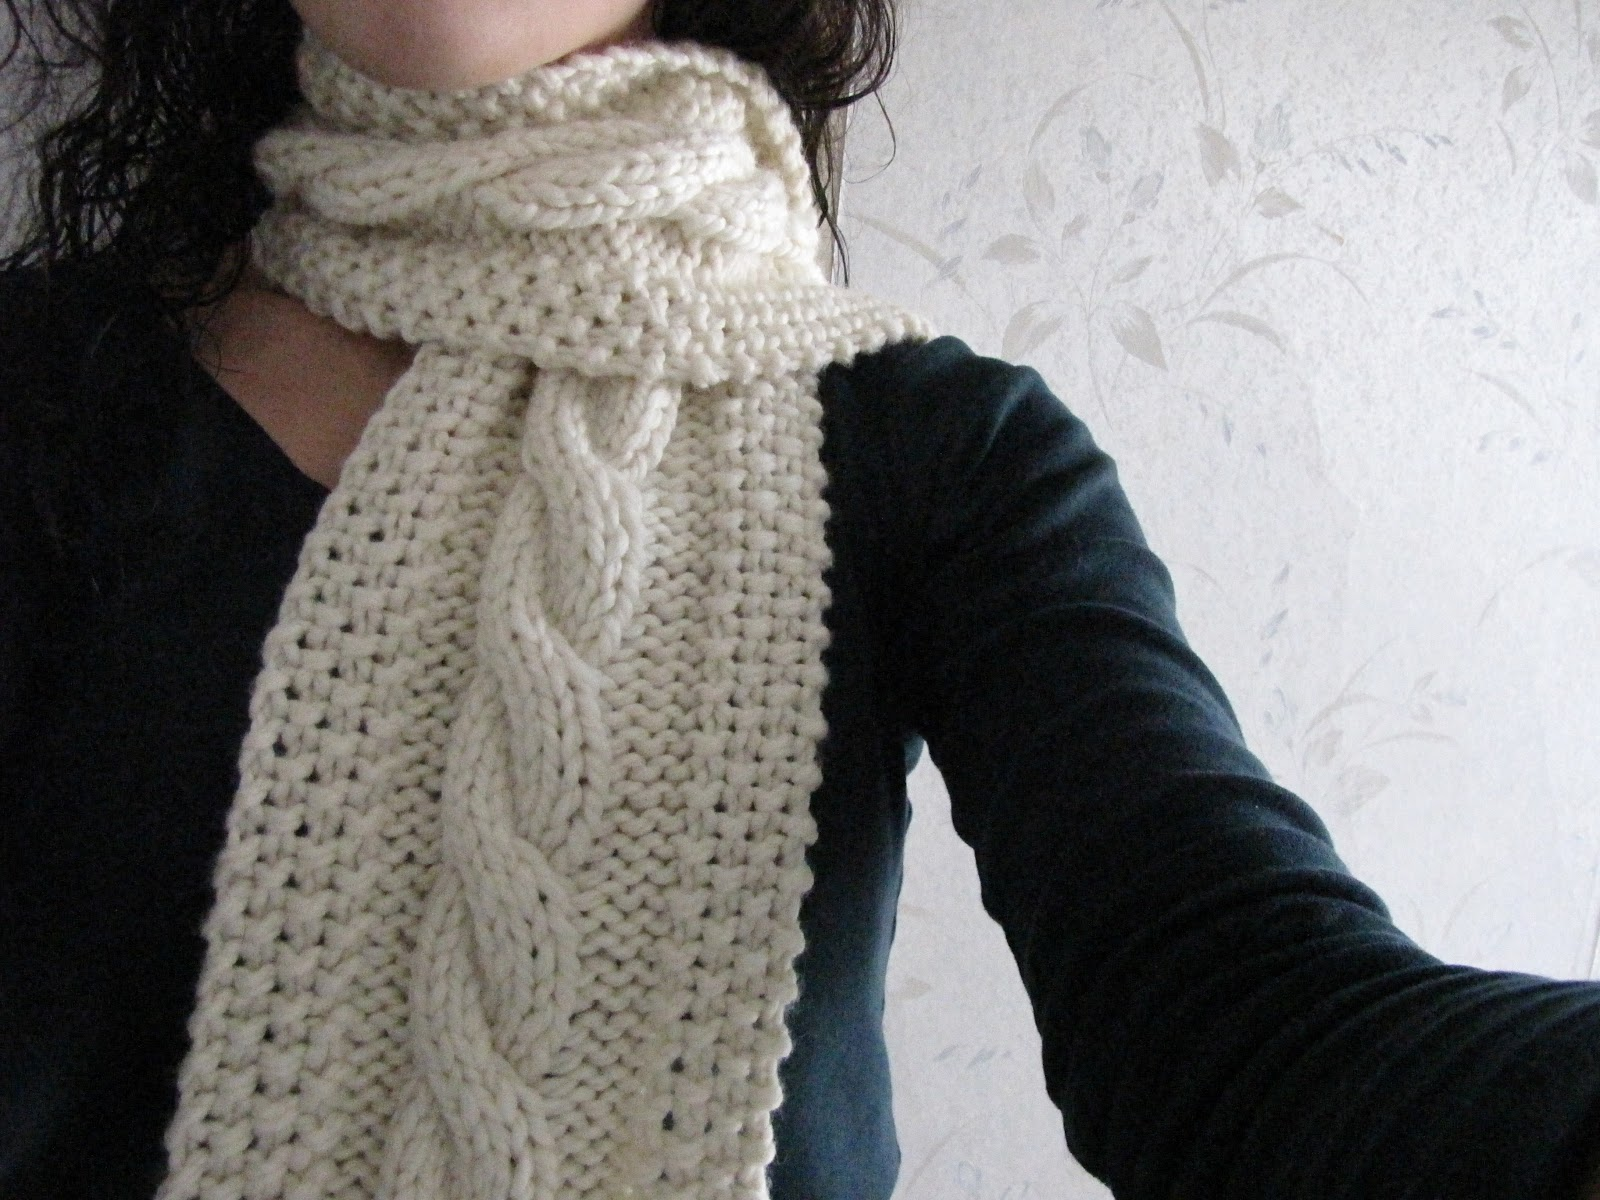 Knitting Cable Patterns Free : Cozy Wooly Cabled Scarf